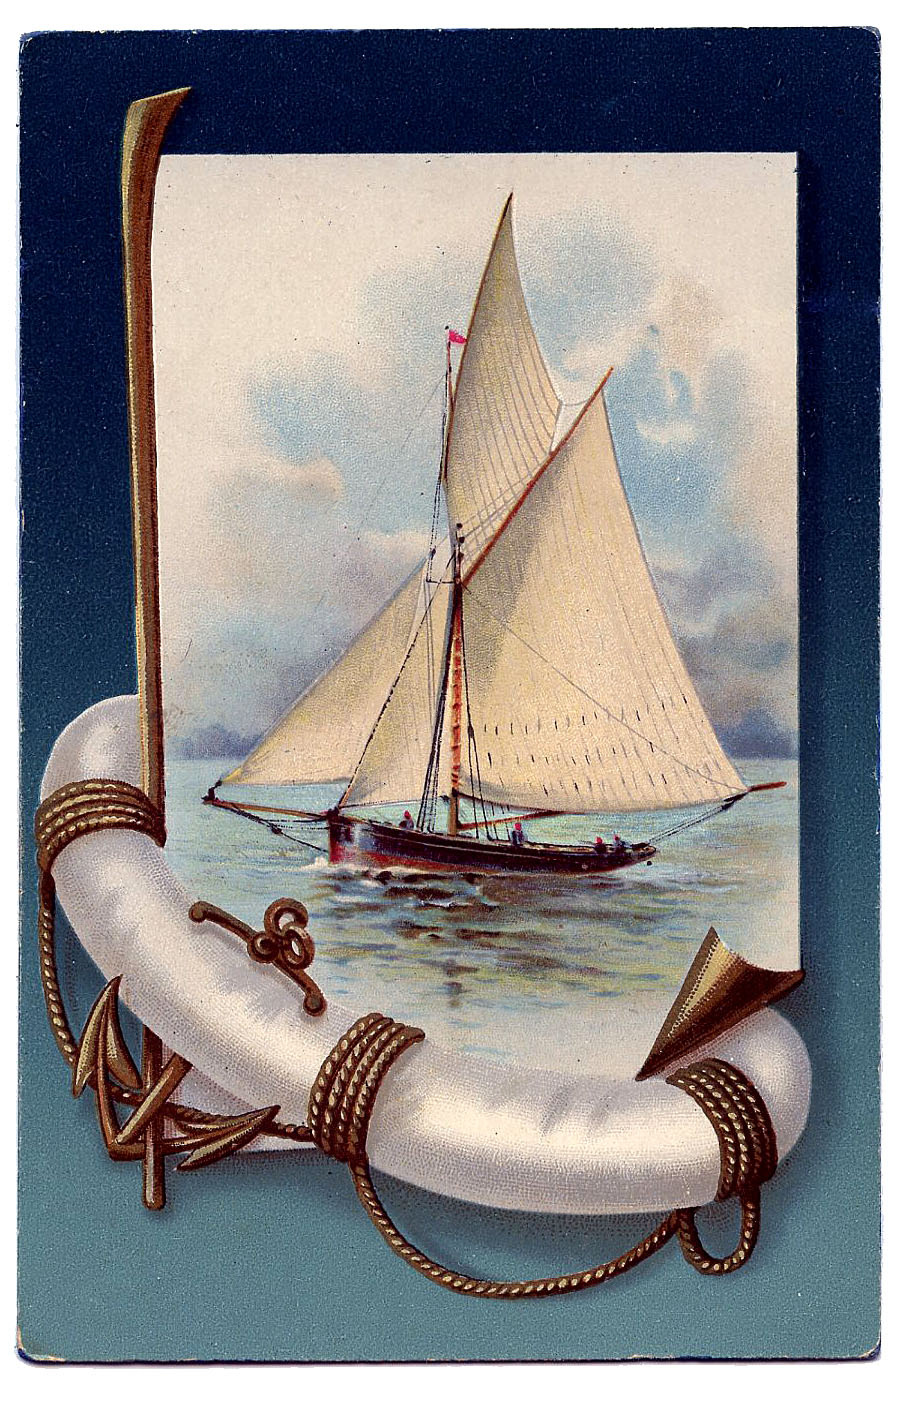 Vintage Nautical Clip Art - Beautiful Sailboat - The Graphics Fairy